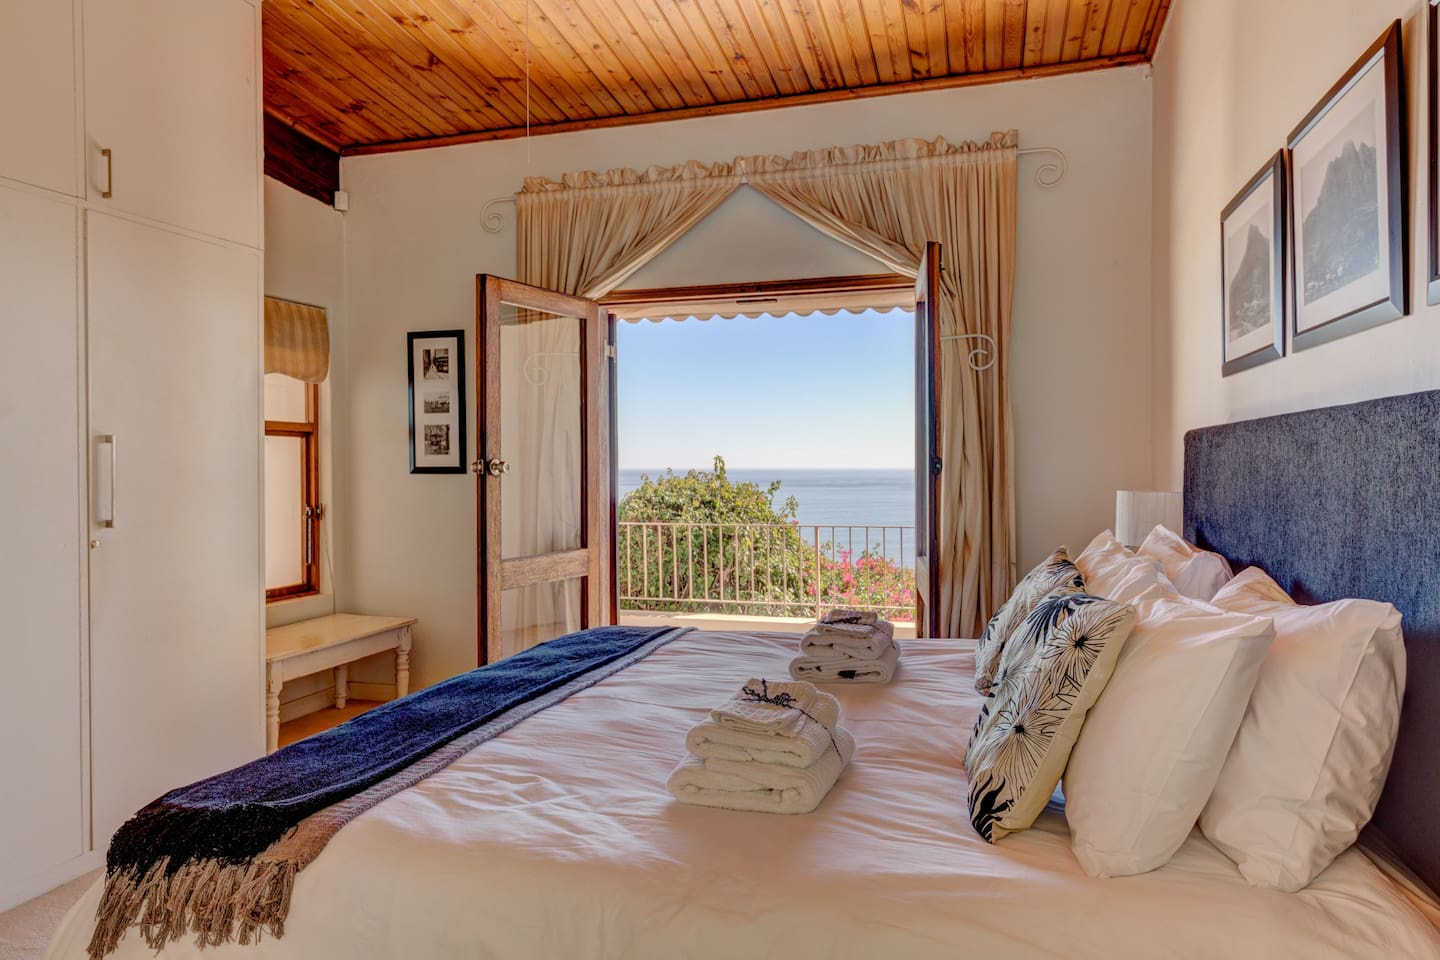 The spacious bedroom with a king size bed with doors leading onto the balcony overlooking the sea